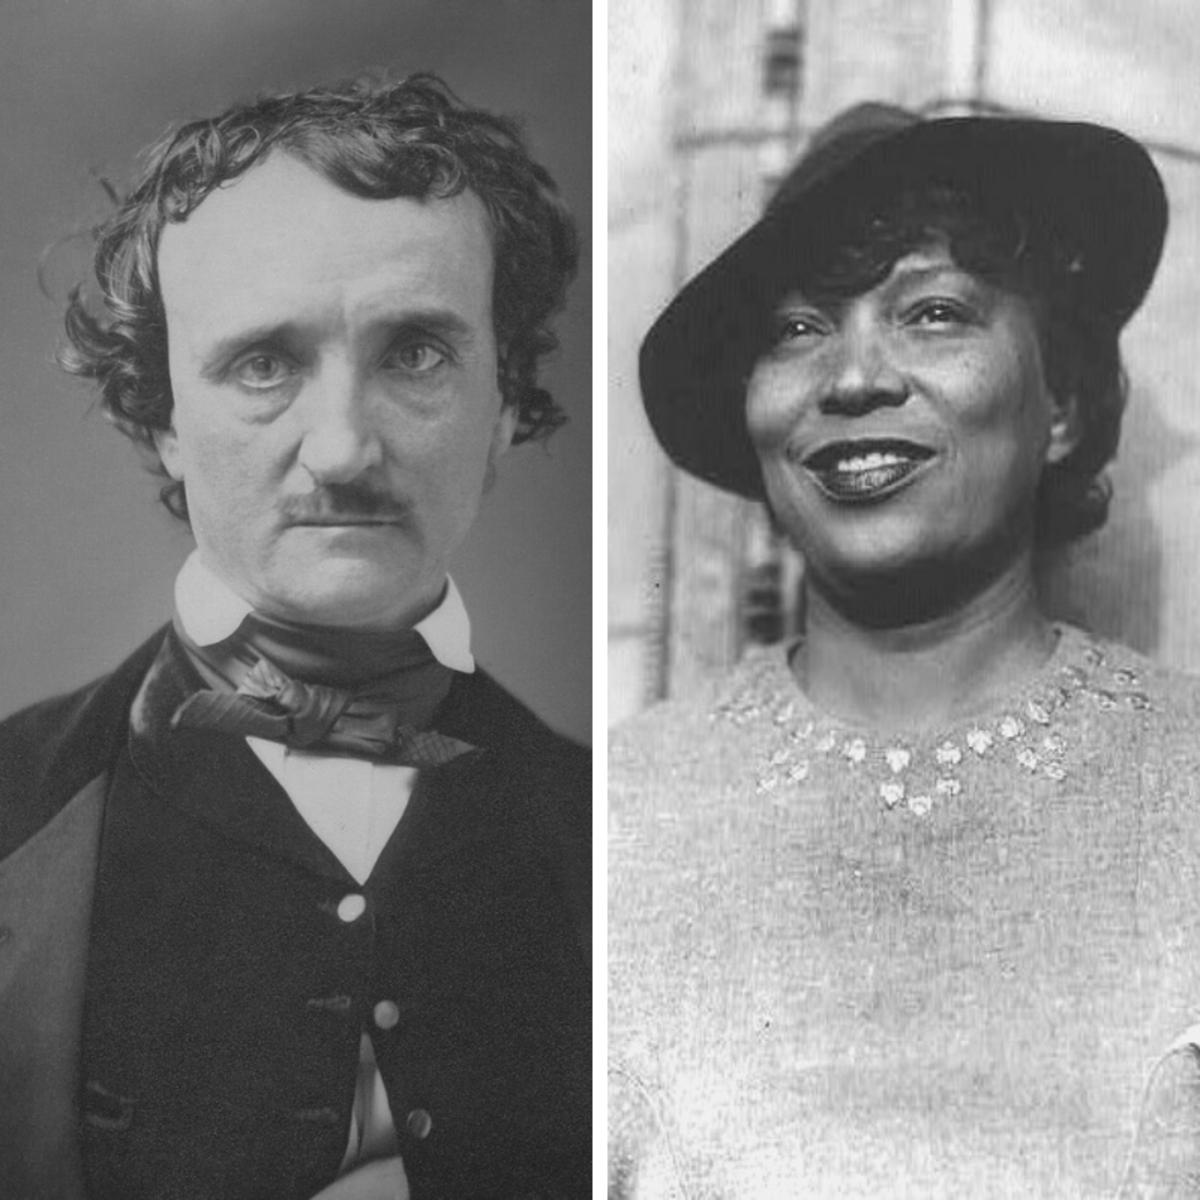 Renowned authors Edgar Allan Poe (left) and Zora Neale Hurston (right) were both born in January.